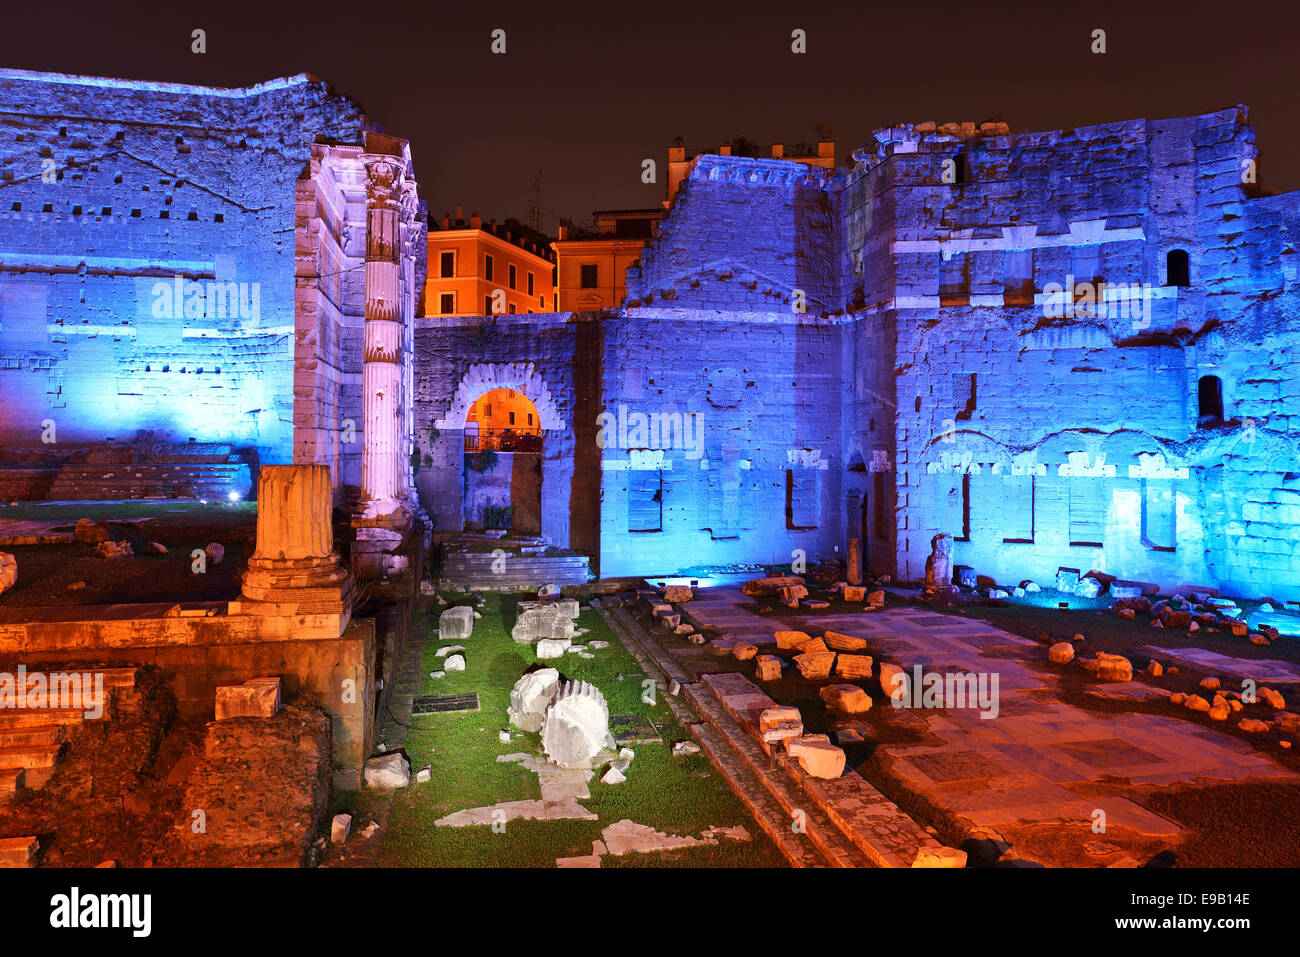 Forum of Augustus with neon lighting, Rome, Italy - Stock Image